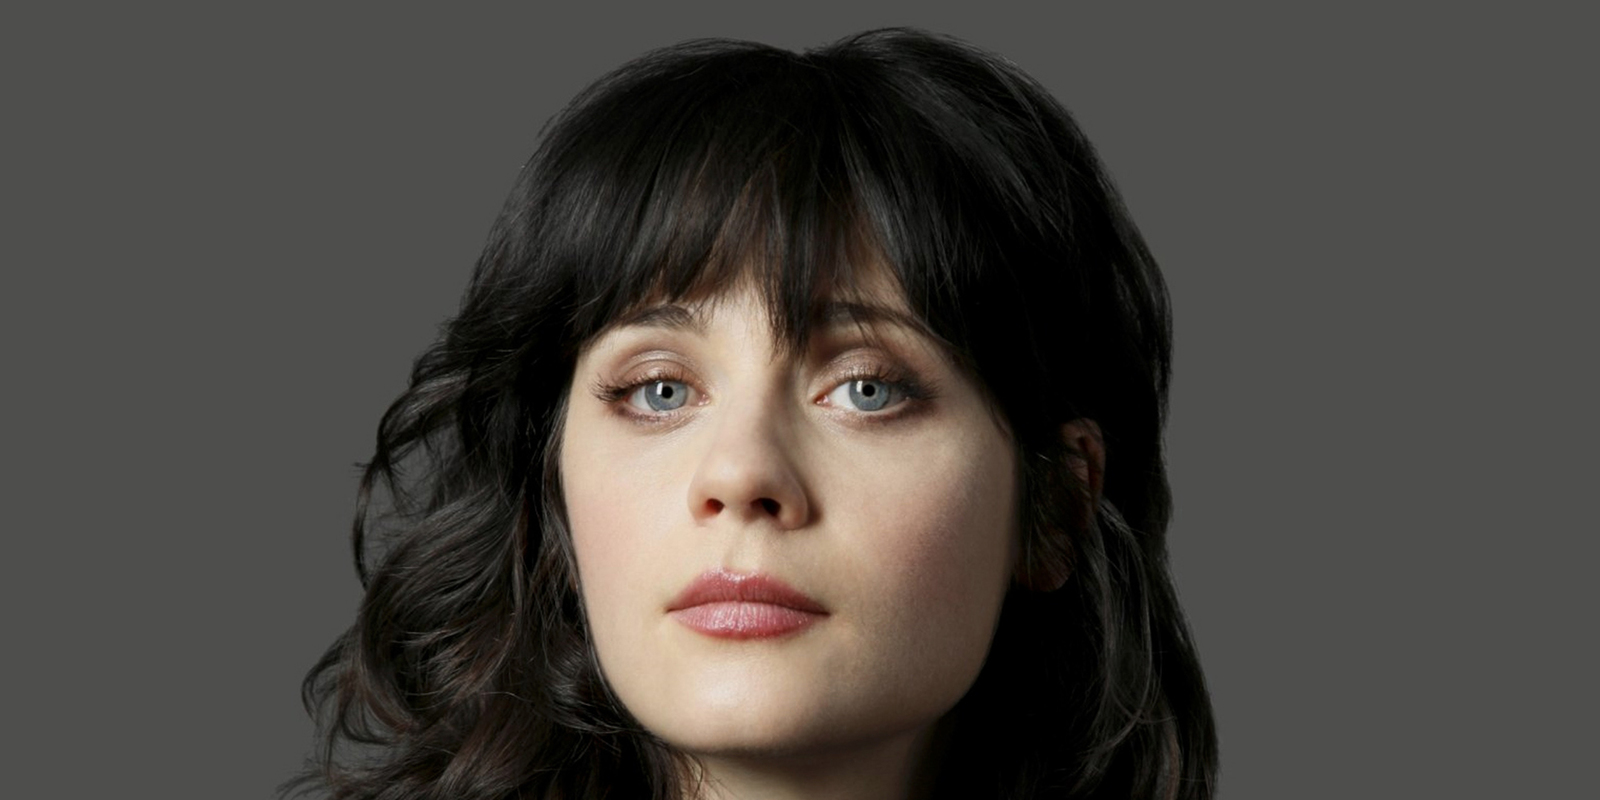 zooey deschanel dating life Zooey deschanel is an actress who also dabbles in singing — but not just as a hobby sign up for tips to simplify your life more from.